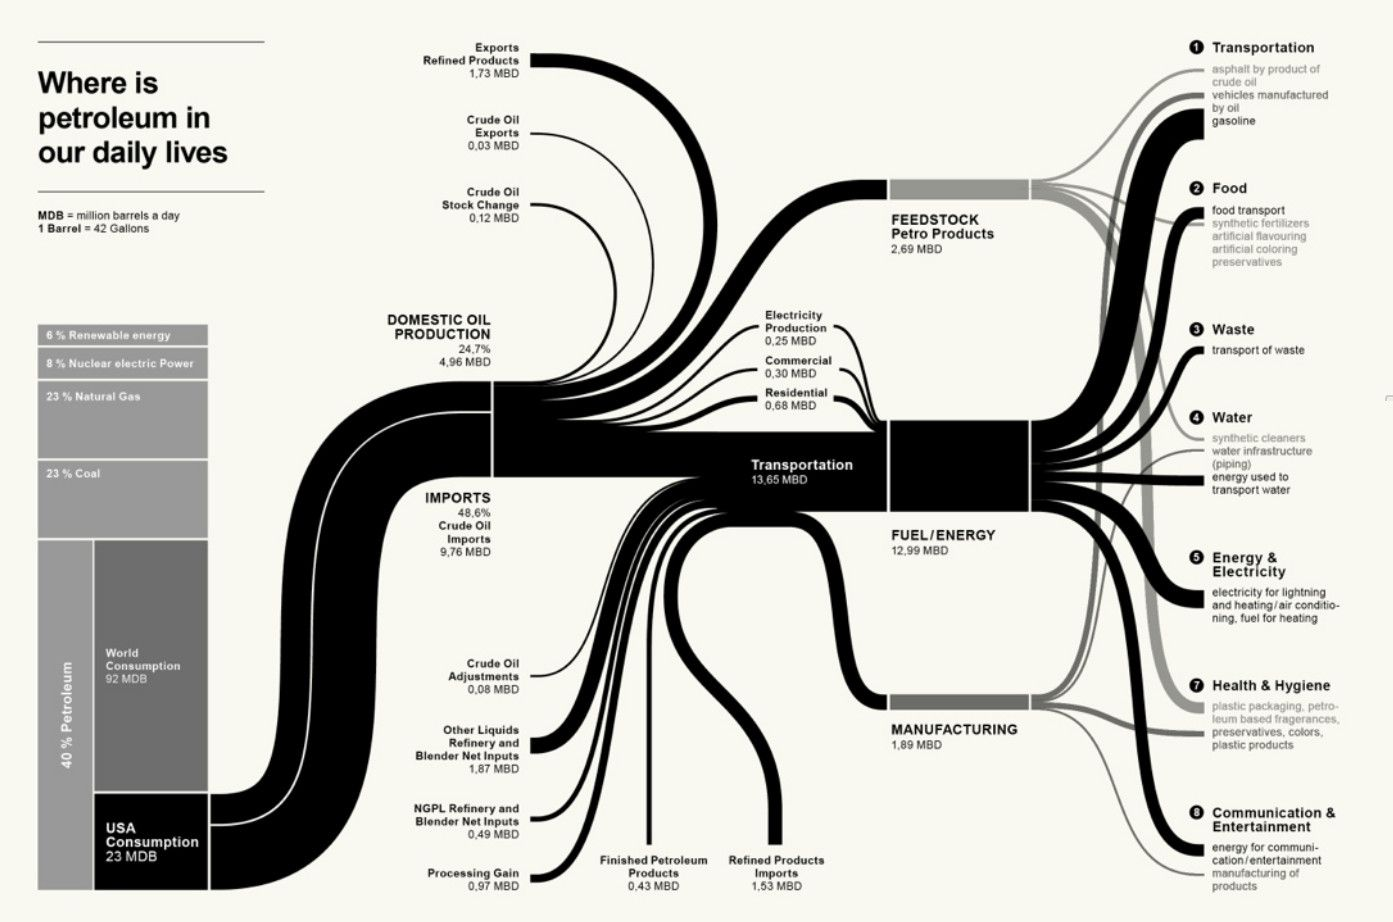 Musings on interesting things sankey diagrams pinterest musings on interesting things sankey diagrams pinterest sankey diagram pooptronica Image collections